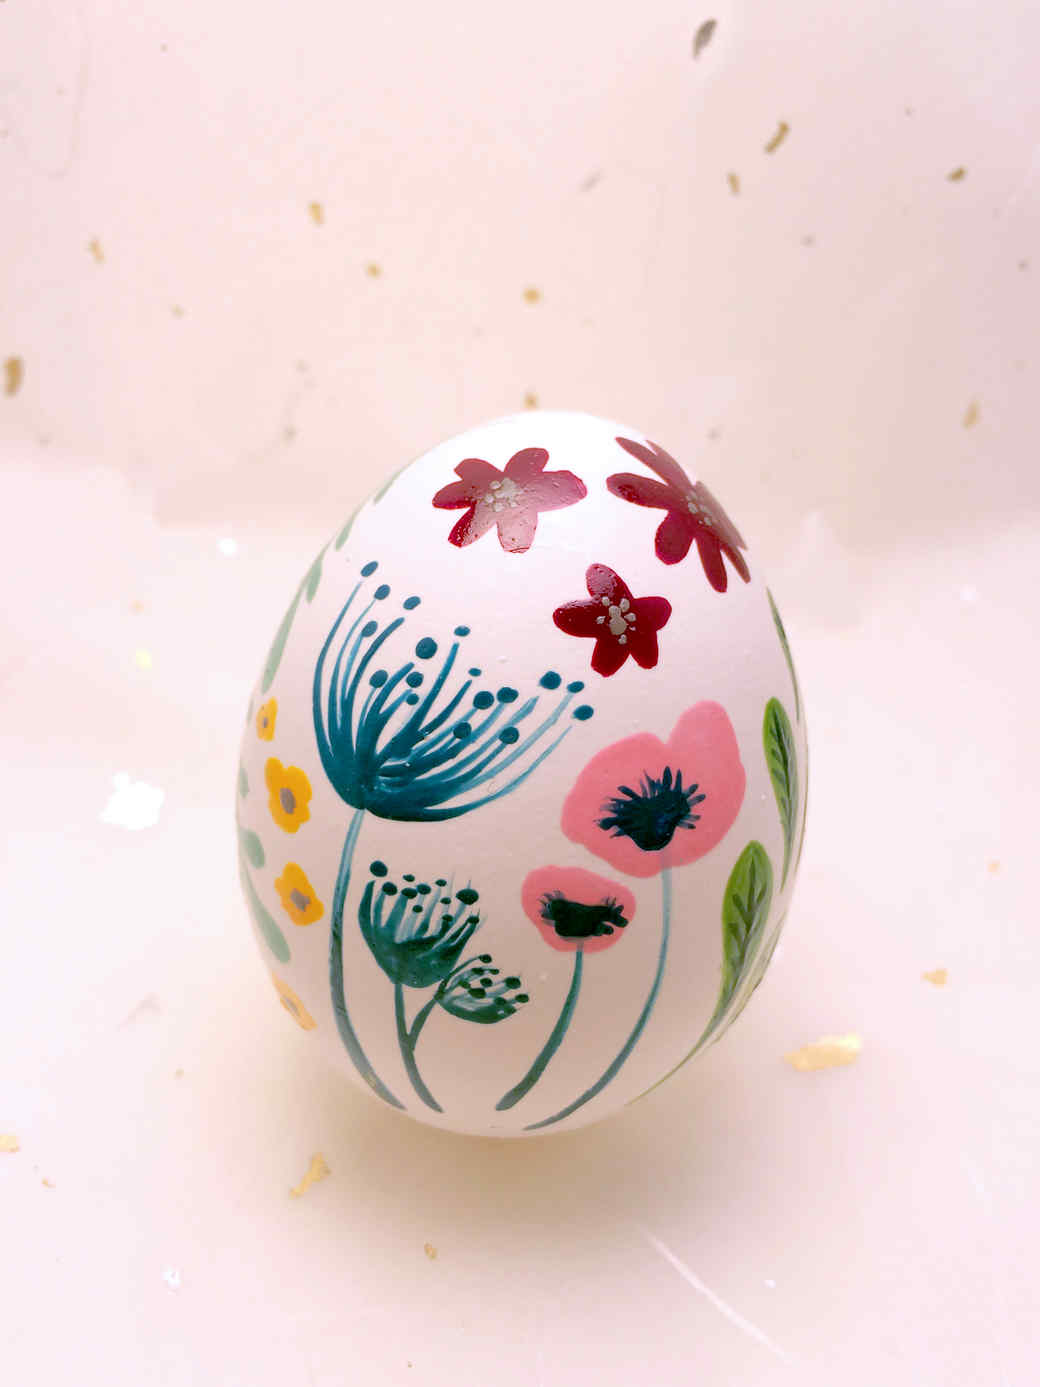 Nail Art Easter Eggs Egg Decorating With Some Serious Polish